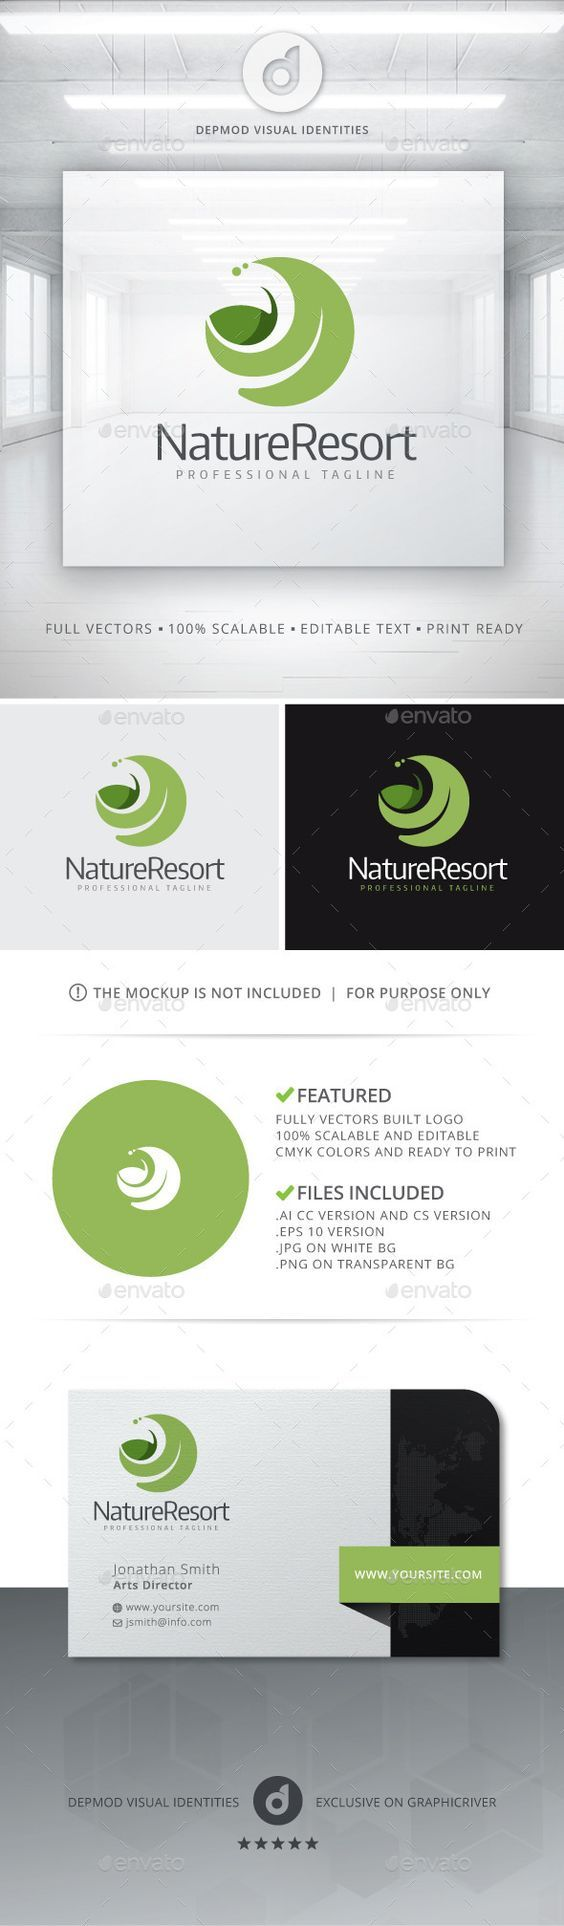 Nature Resort Logo (JPG Image, Vector EPS, AI Illustrator, Resizable, CS, care, caring, detente, eco, eco logo, ecological, environment, environmental, fresh, green, health, leaf, leaf logo, leaves, massage, modern, natural, nature, nature care, organic, professional, relaxation, resort, spa, spa resort, studio, tree, yoga, zen):